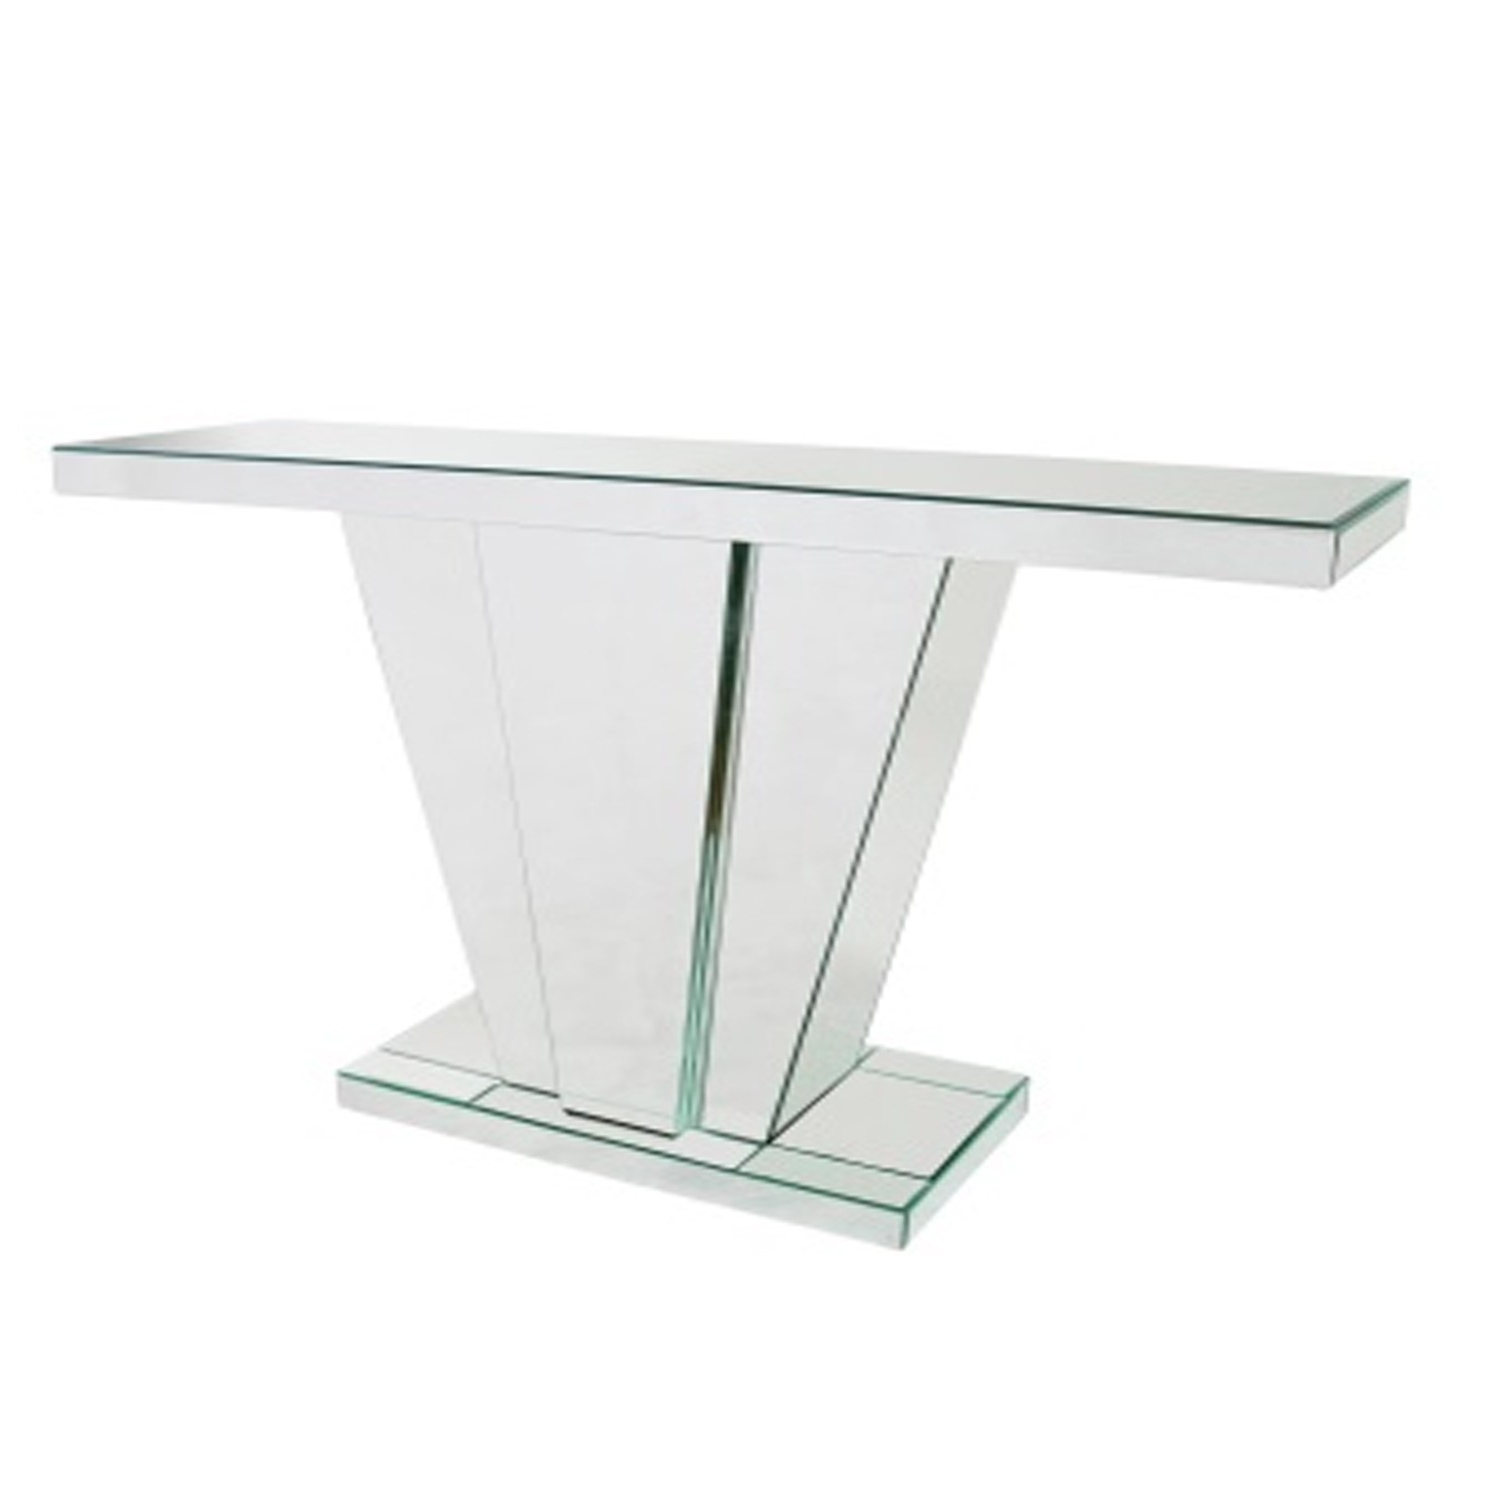 V Frame Mirrored Console Table Abreo Home Furniture Regarding Frame Console Tables (View 14 of 20)